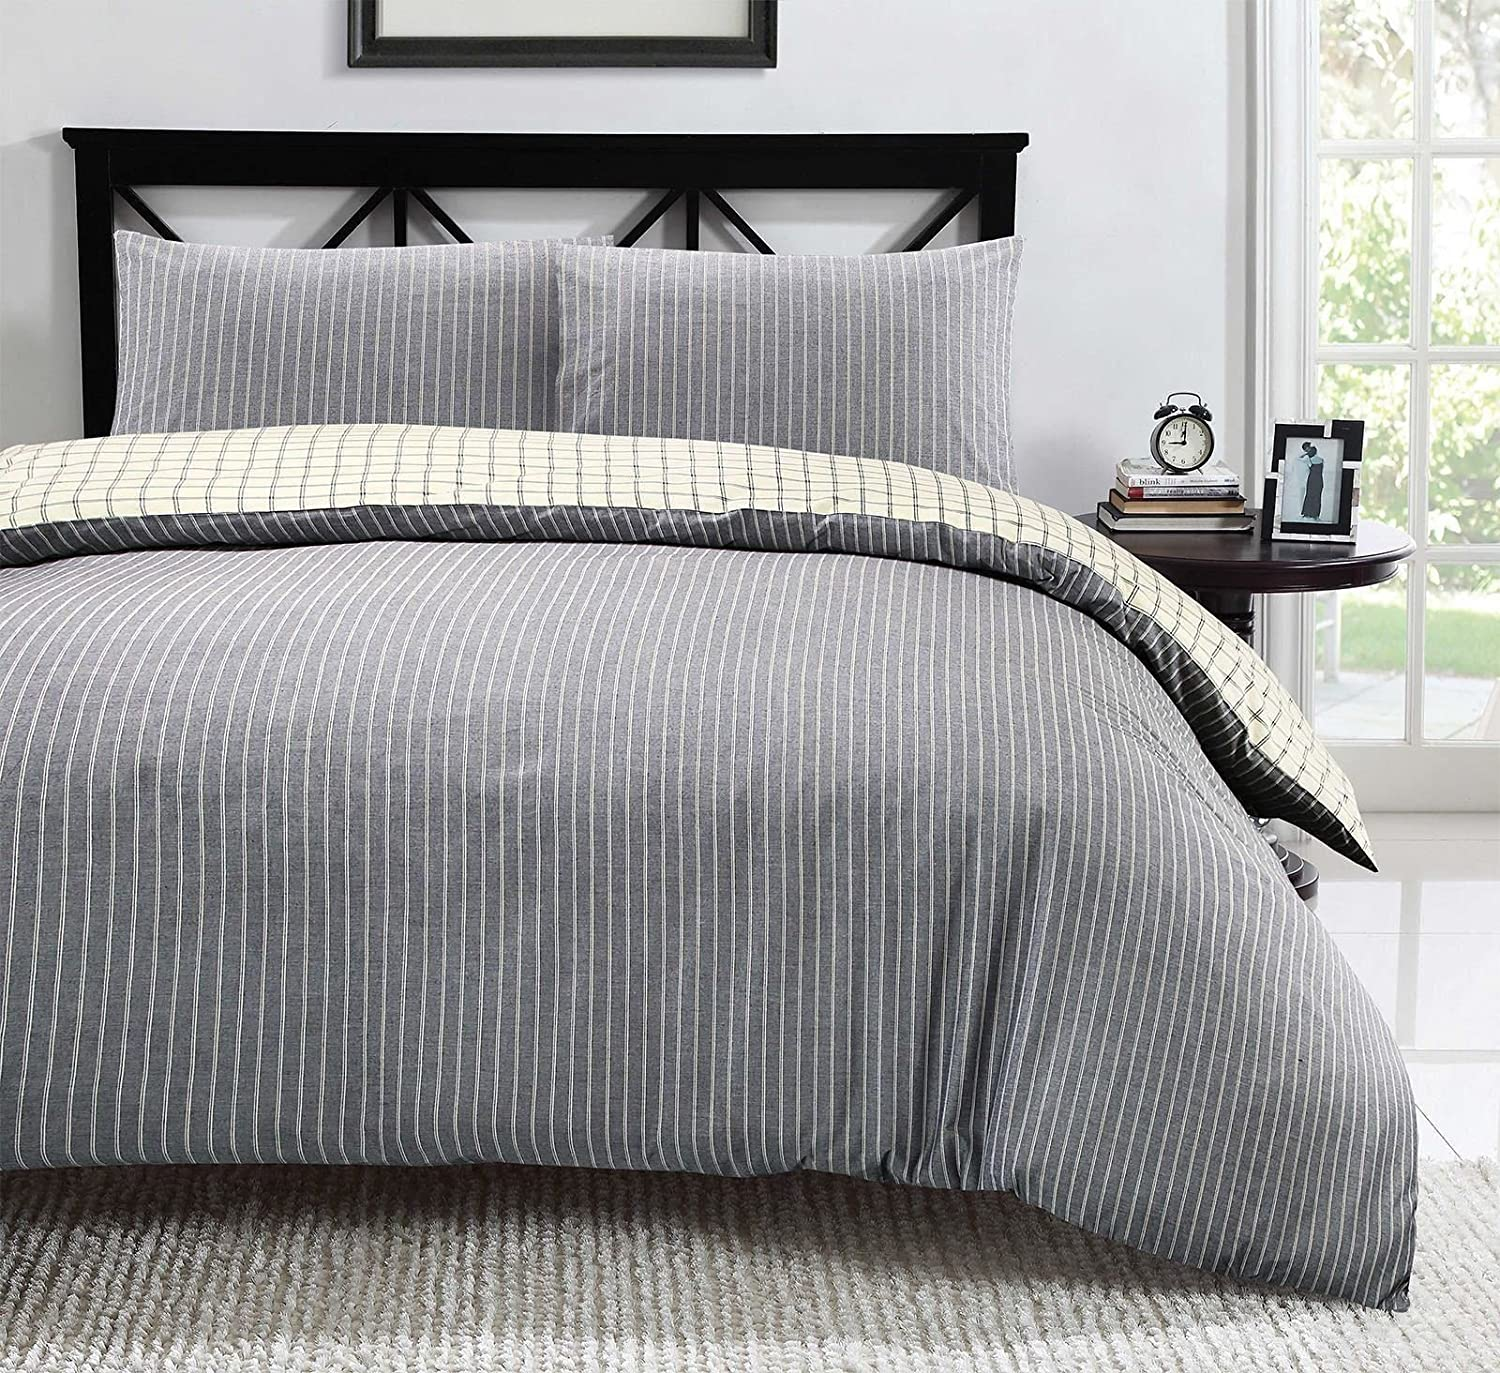 cover wash julian set thread duvet care easy stone count chambray